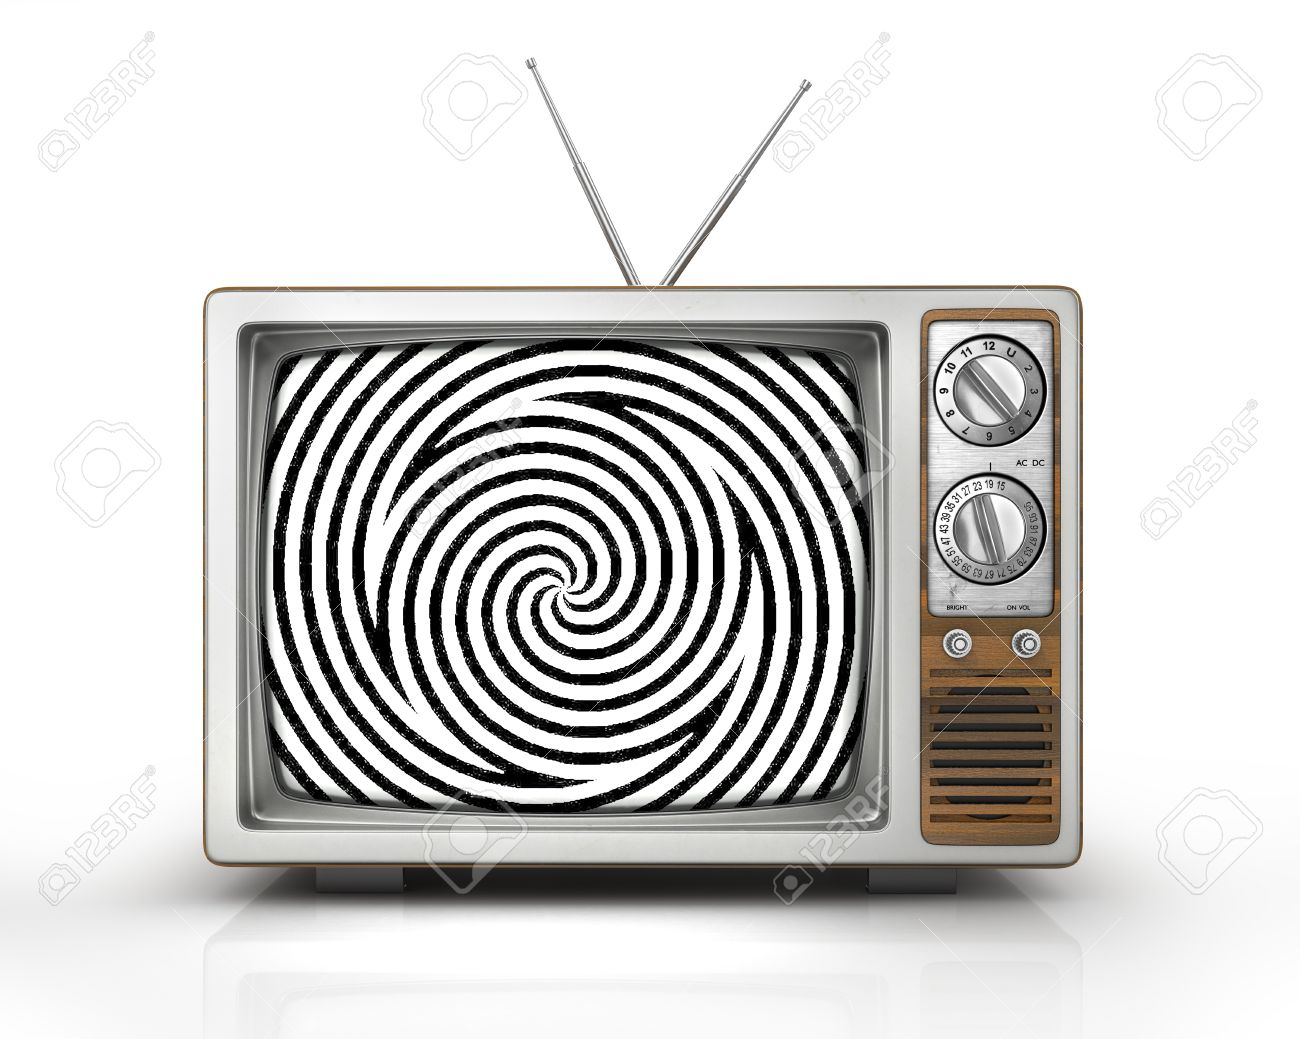 64617955-television-as-influential-mass-media-hypnotic-spiral-on-the-screen-metaphor-of-mind-control-propagan.jpg